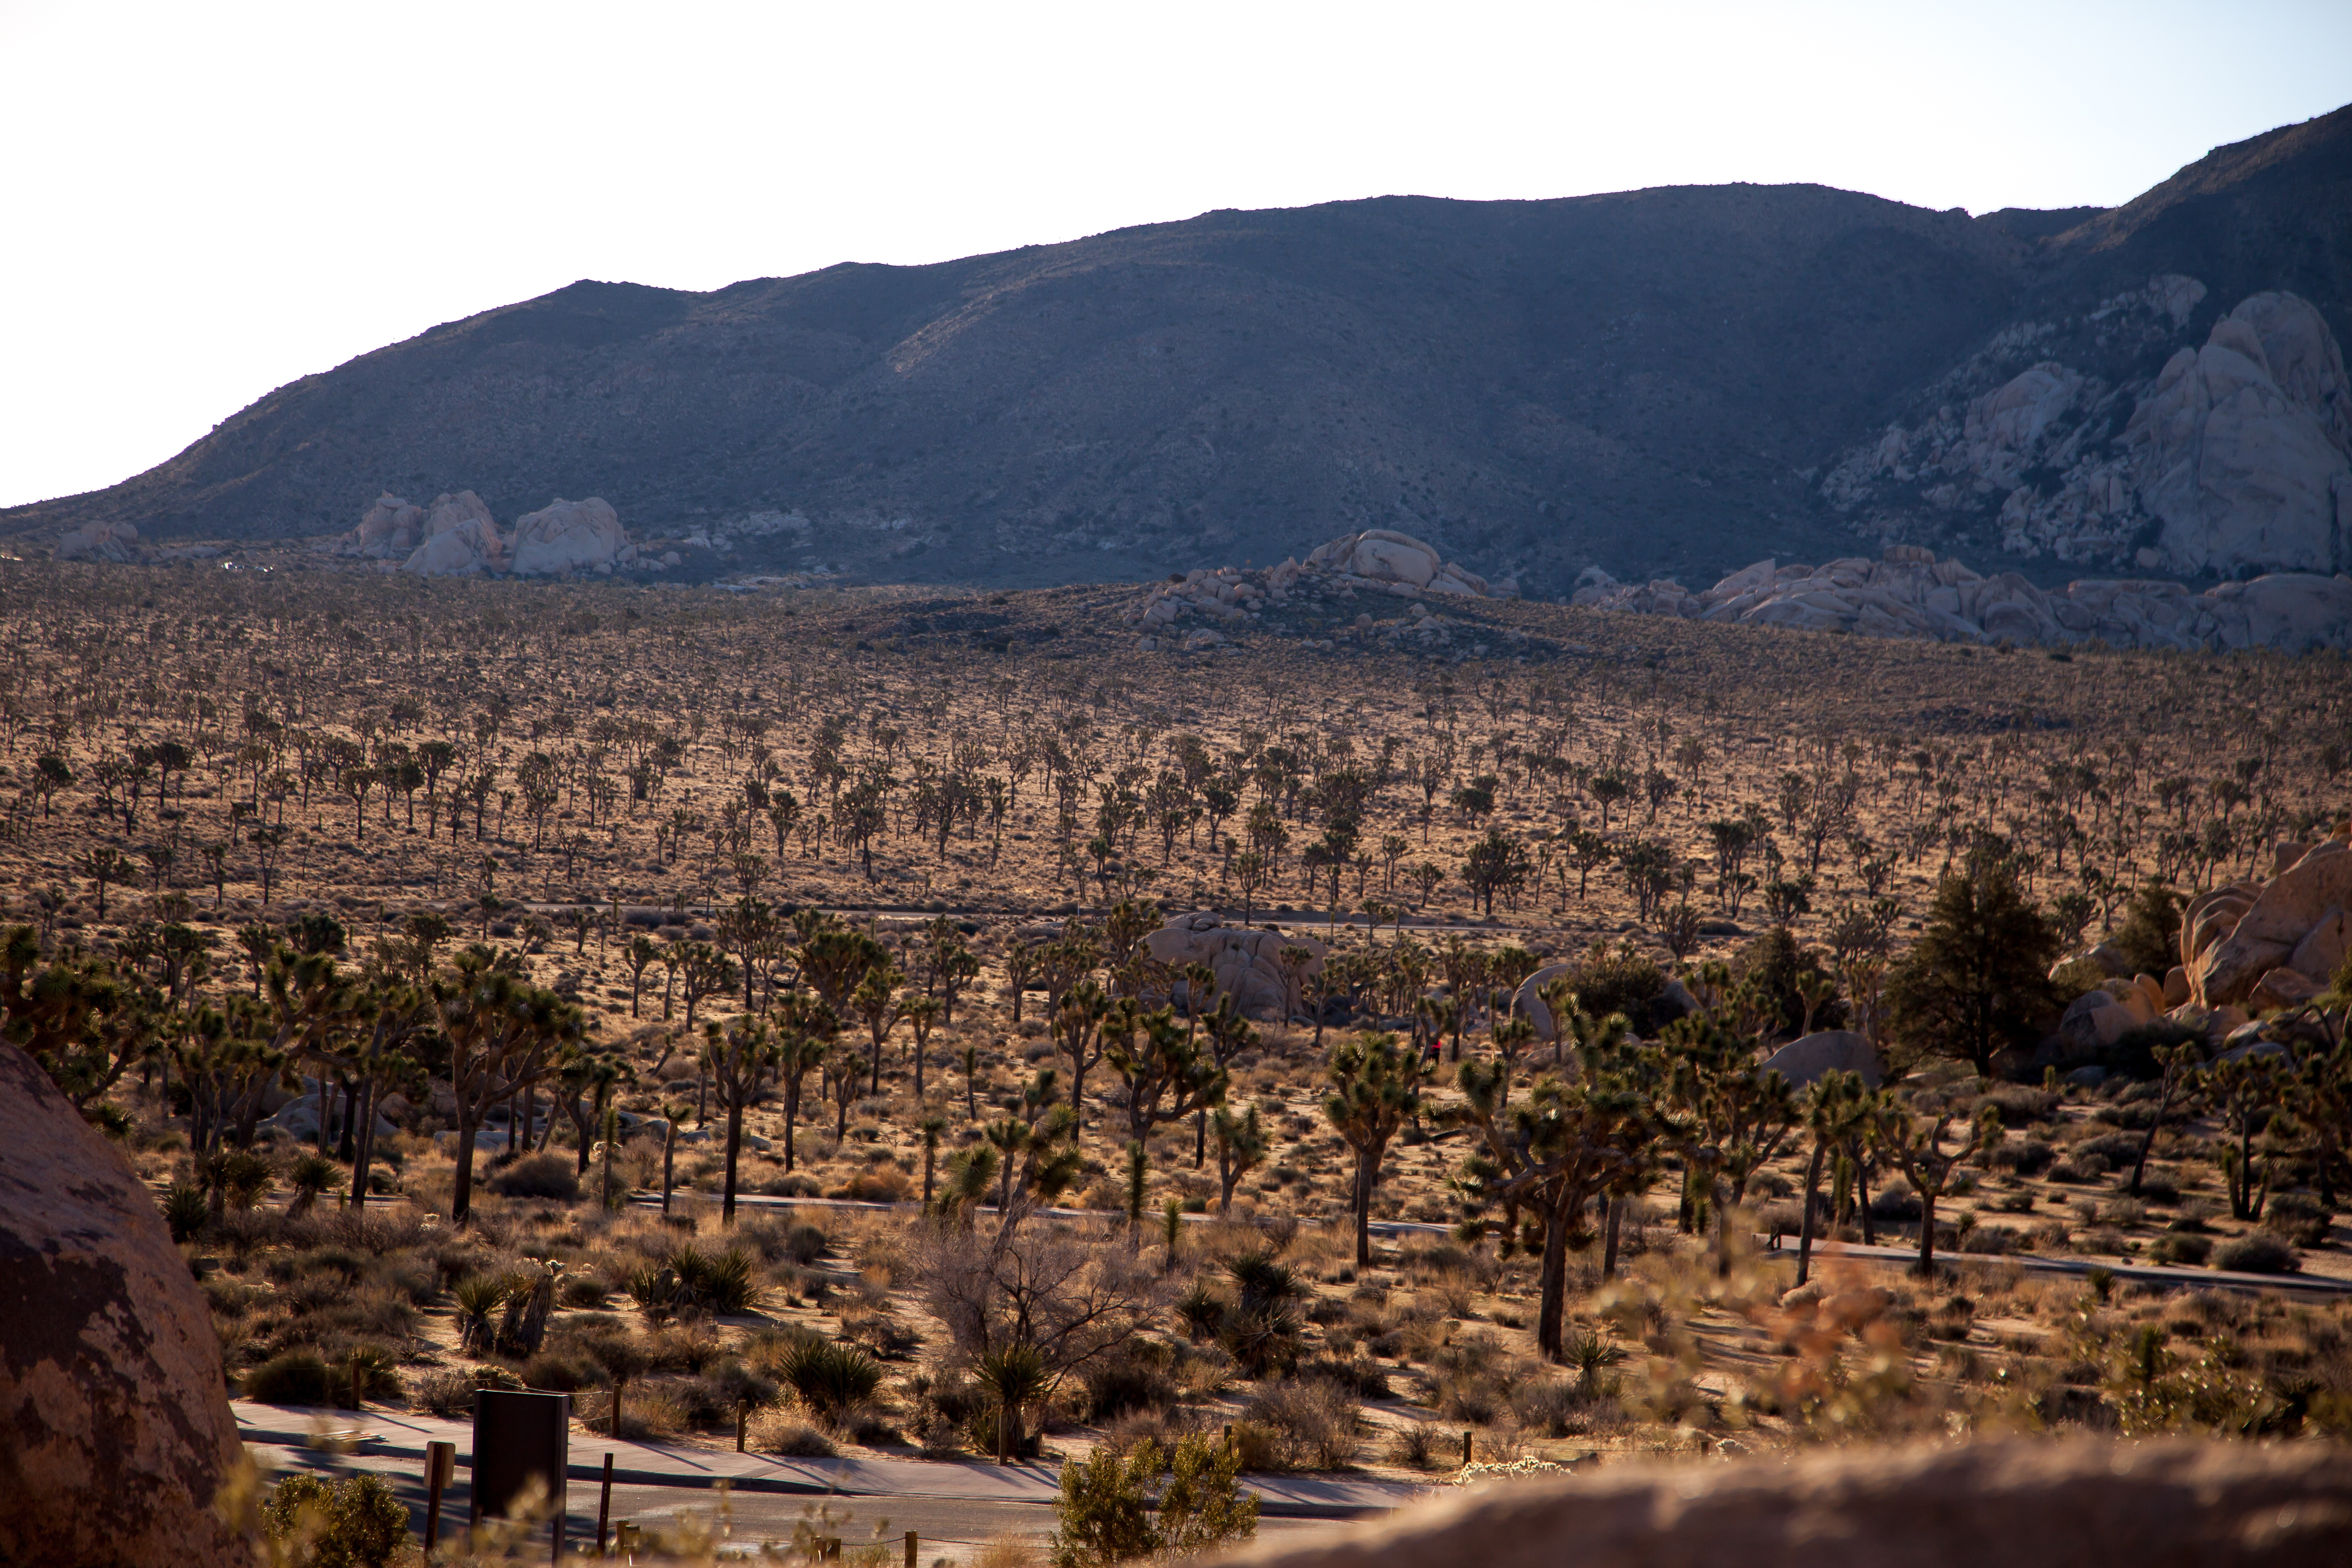 a veritable forest of Joshua trees